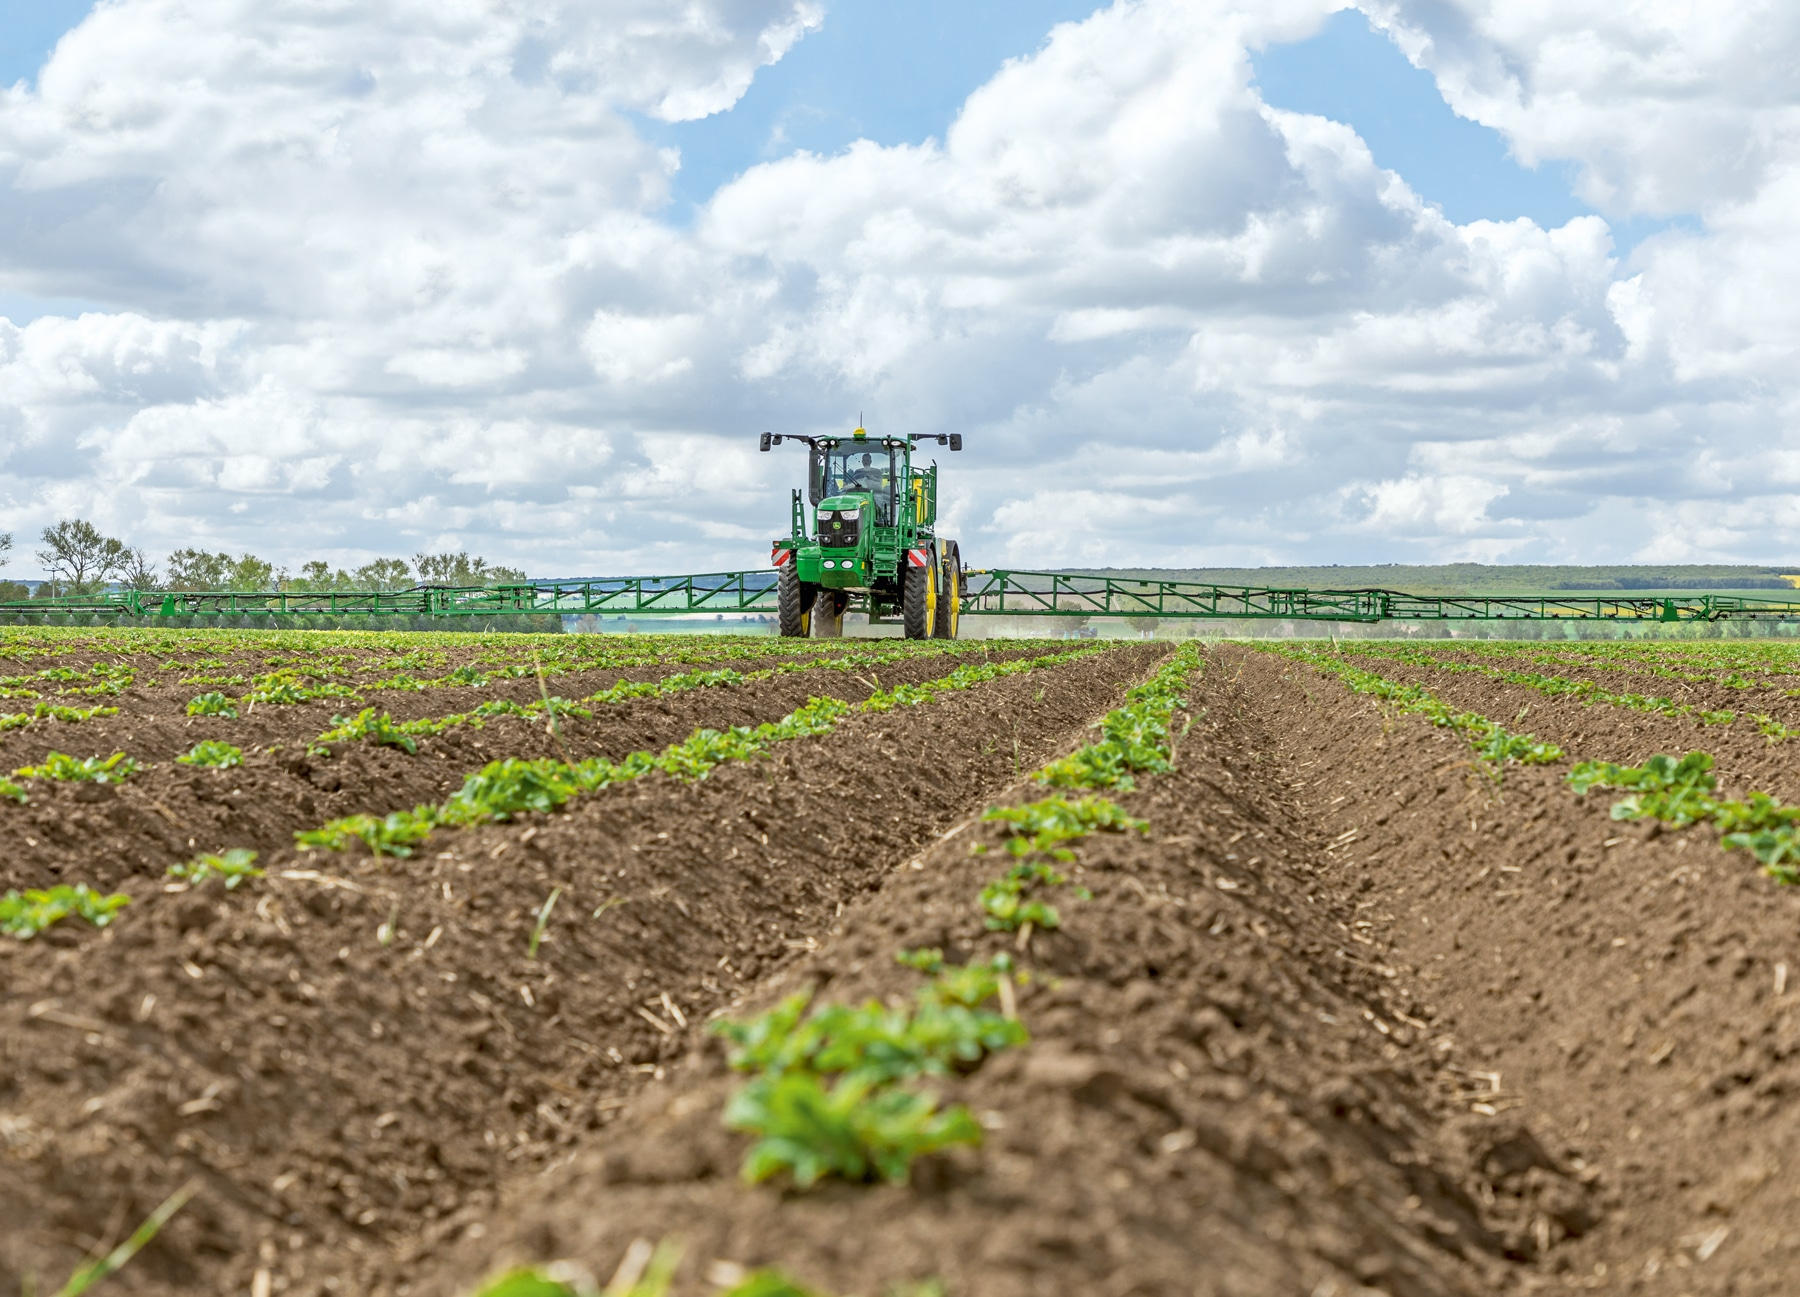 John Deere's Take on Sustainable Economy with Smart Technology